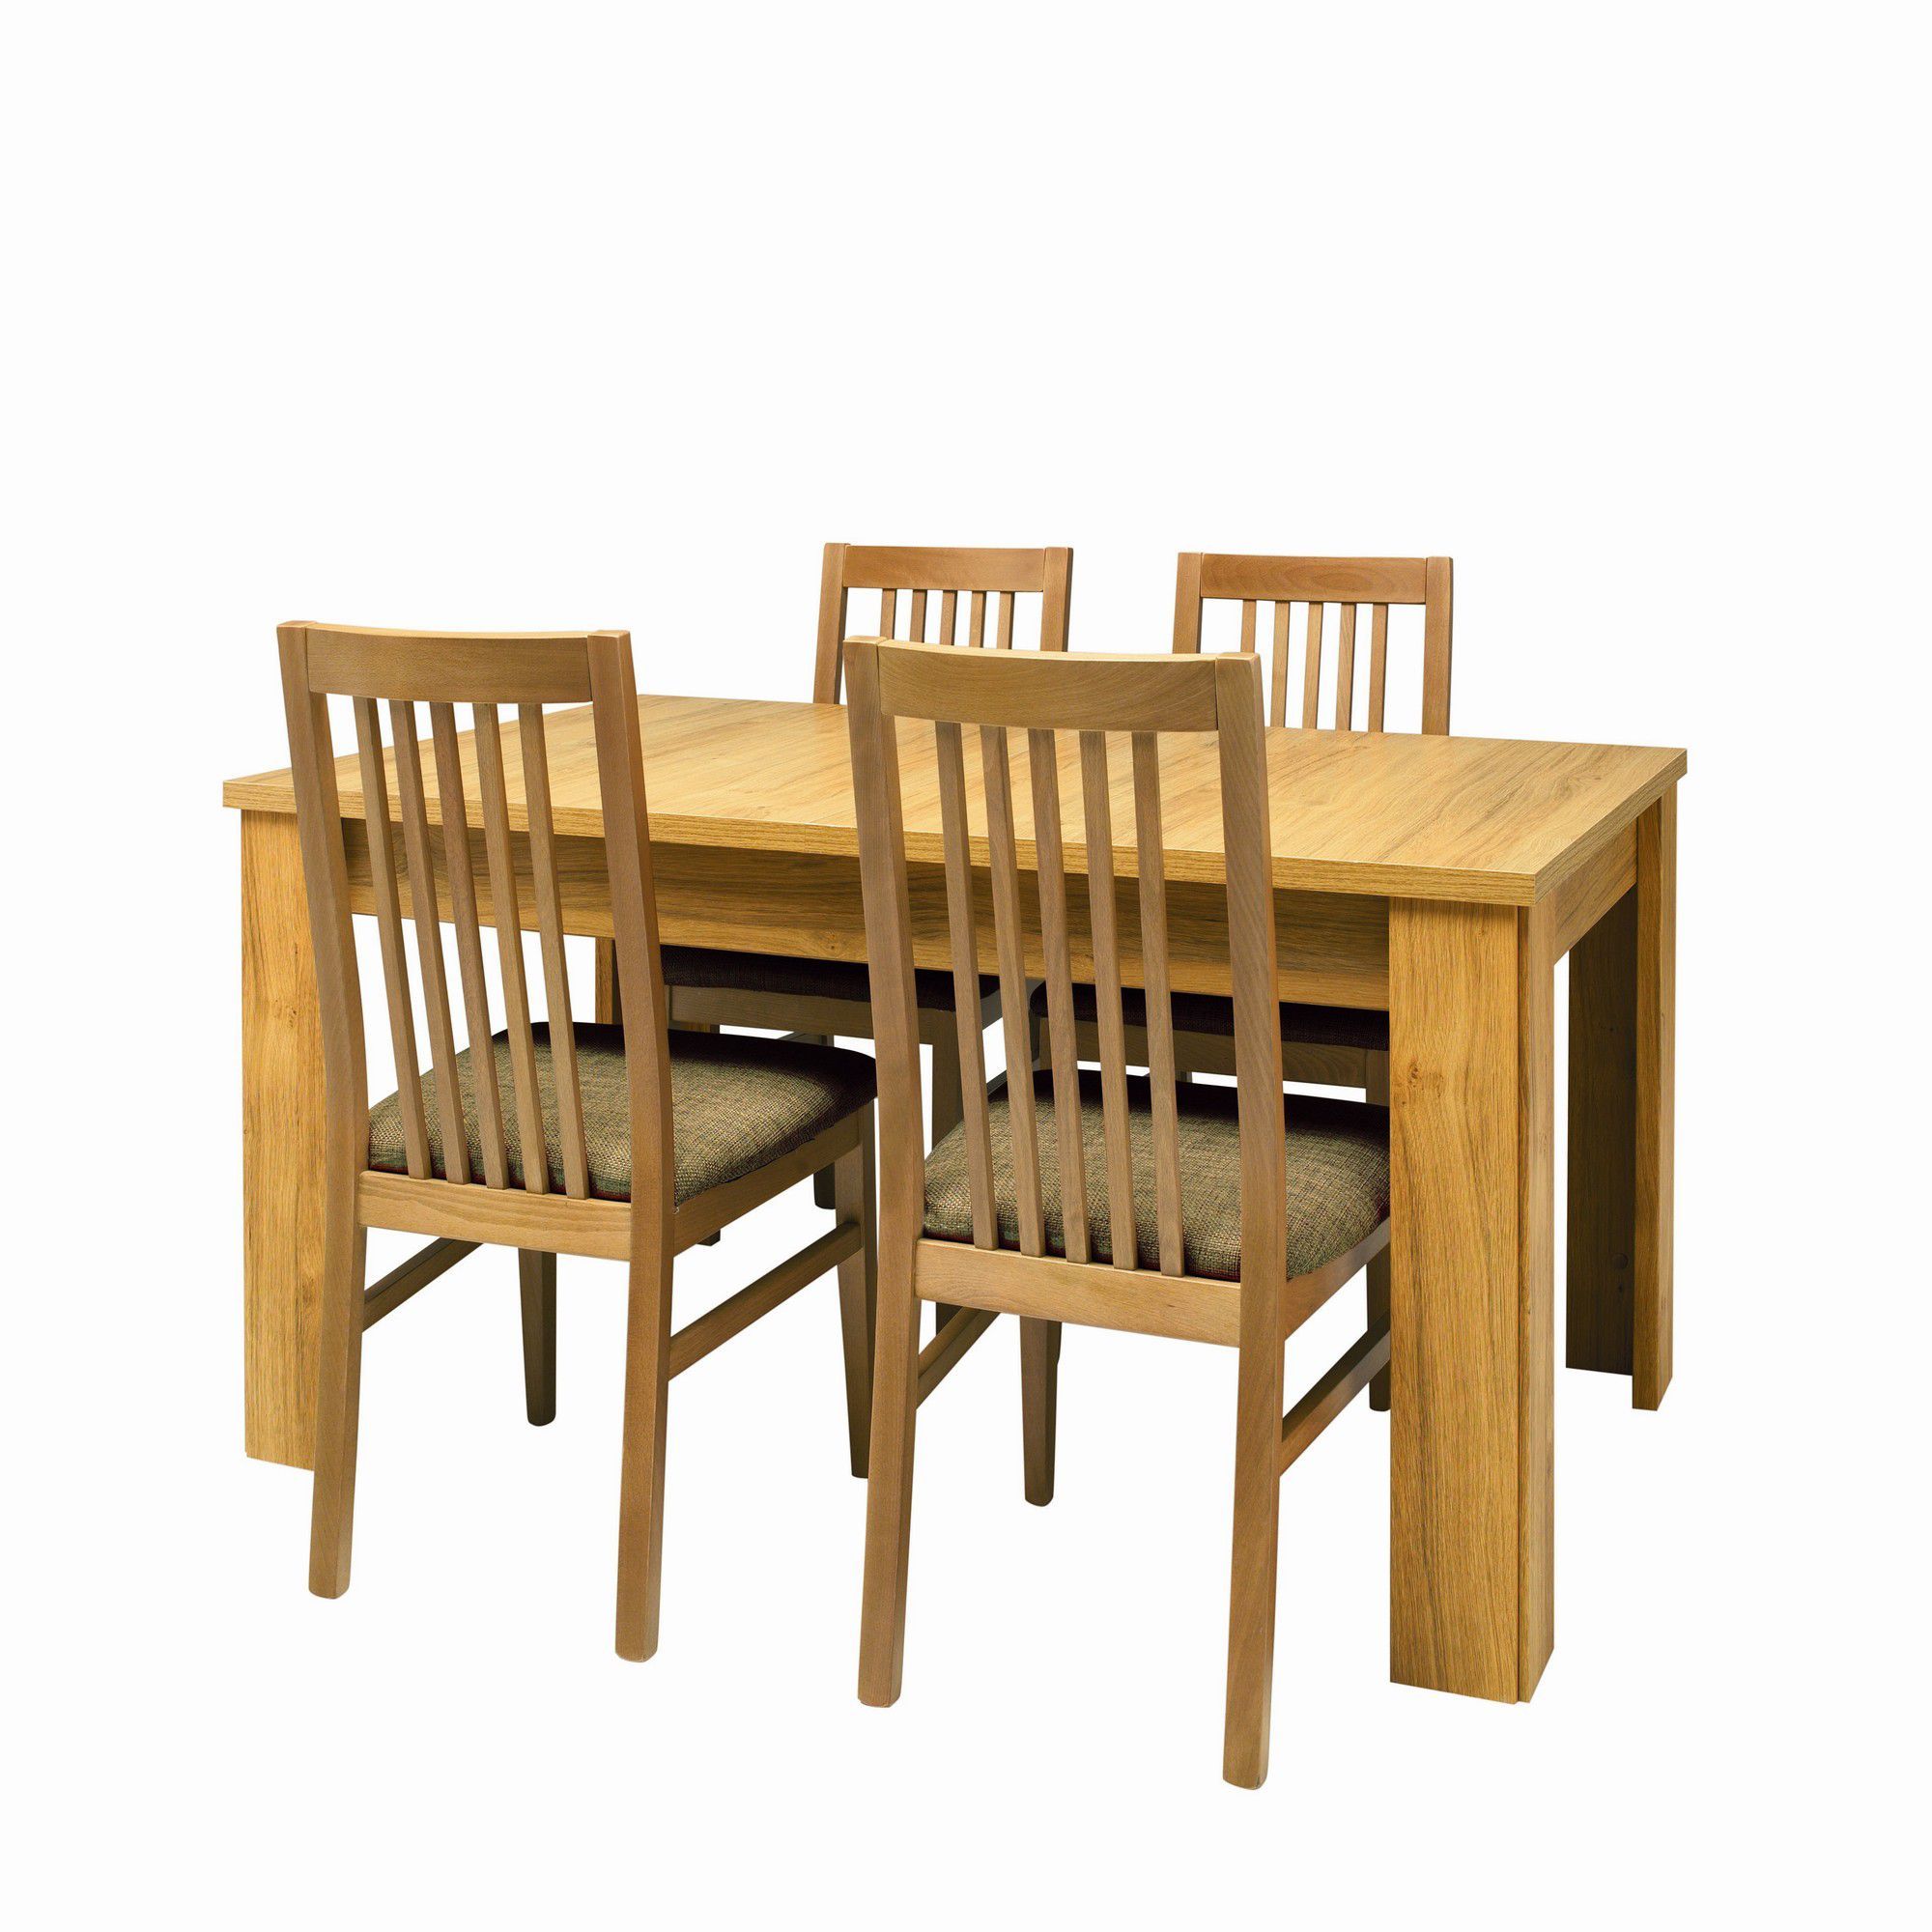 Caxton Strand Extending Dining Set with 4 Slatted Back Dining Chairs in Oak - Mushroom at Tesco Direct